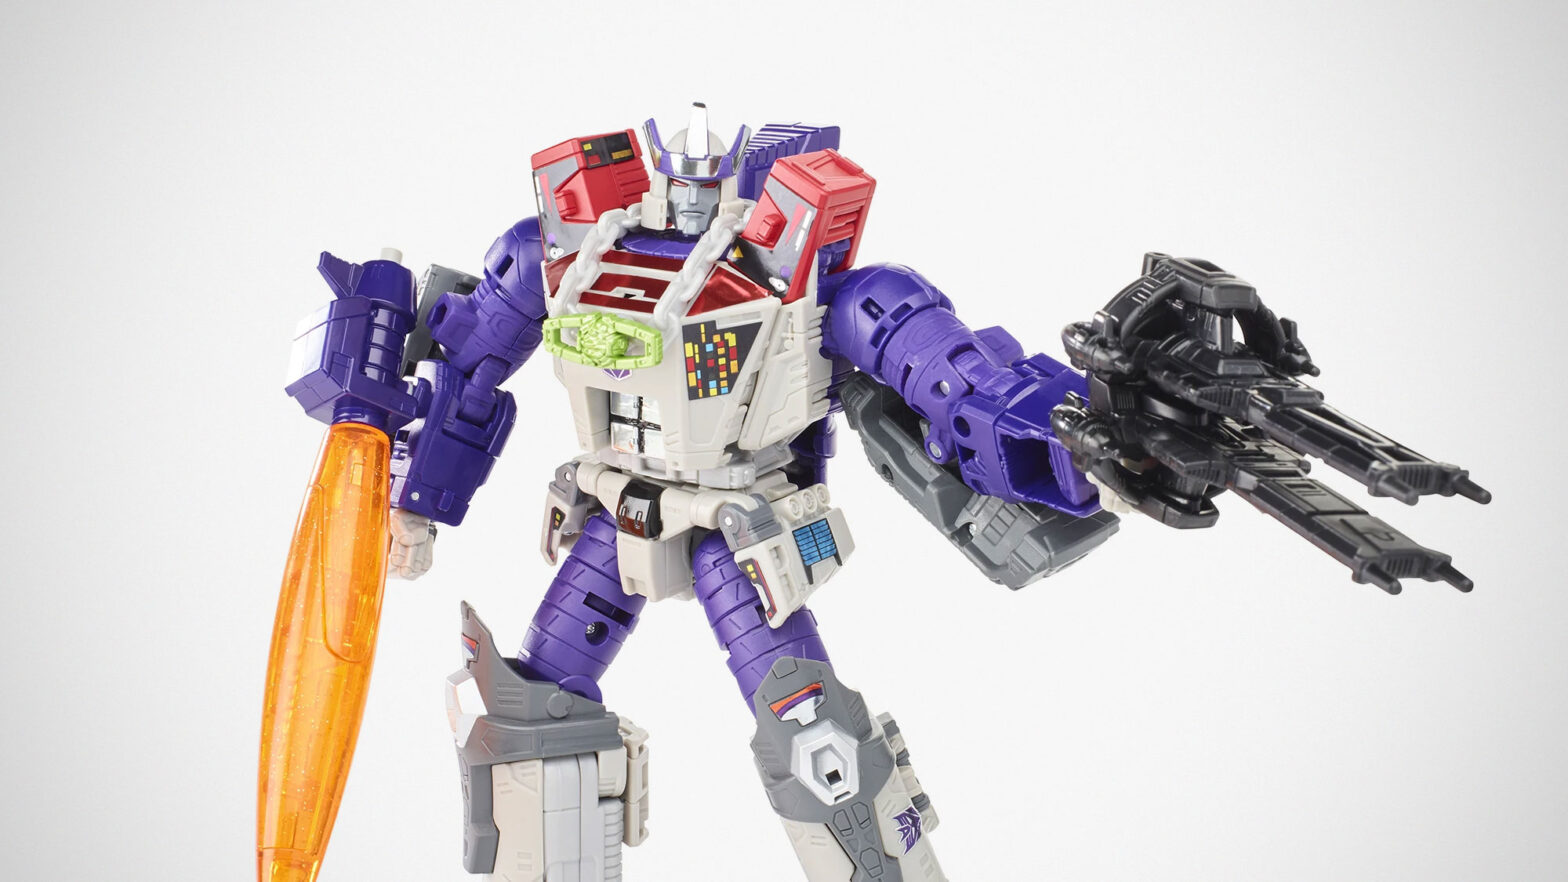 Transformers Generations Selects Leader WFC-GS27 Galvatron